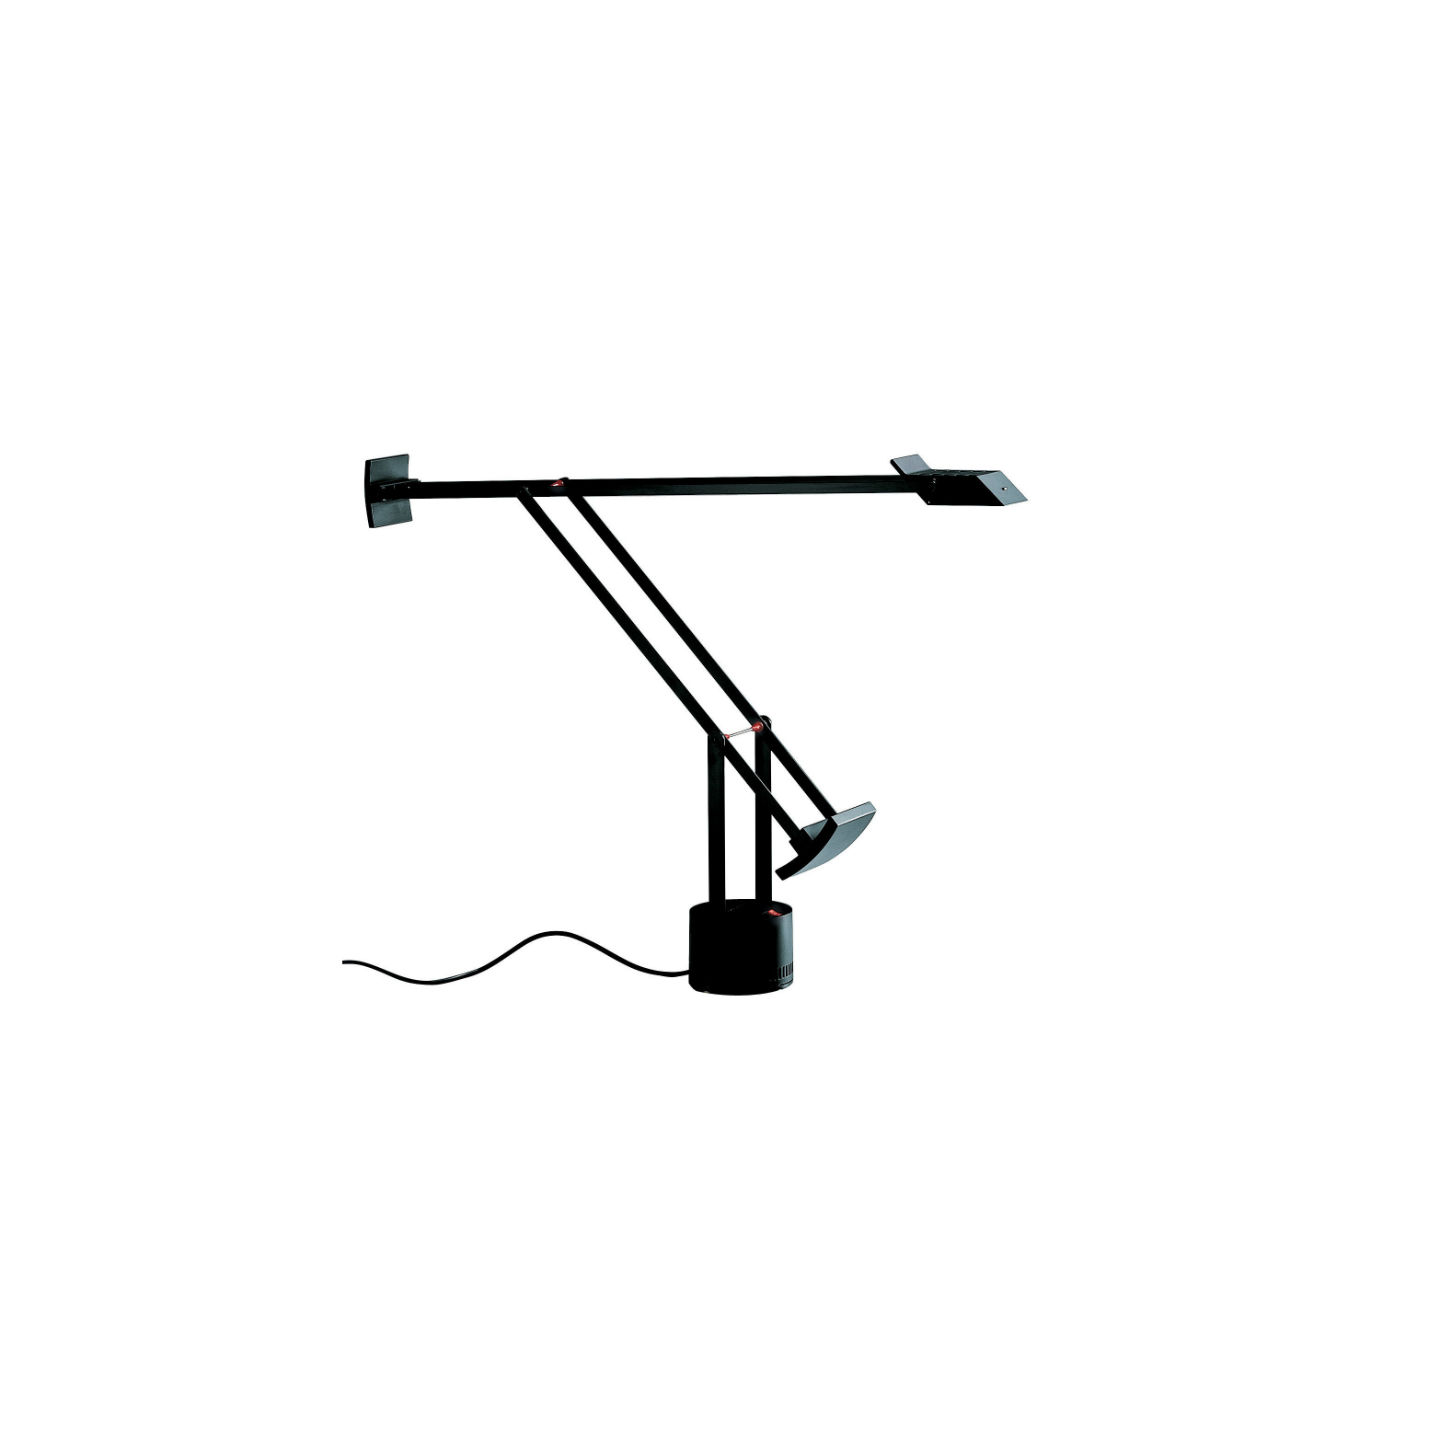 Tizio 35 Table lamp Gy6.35 1x35w Black